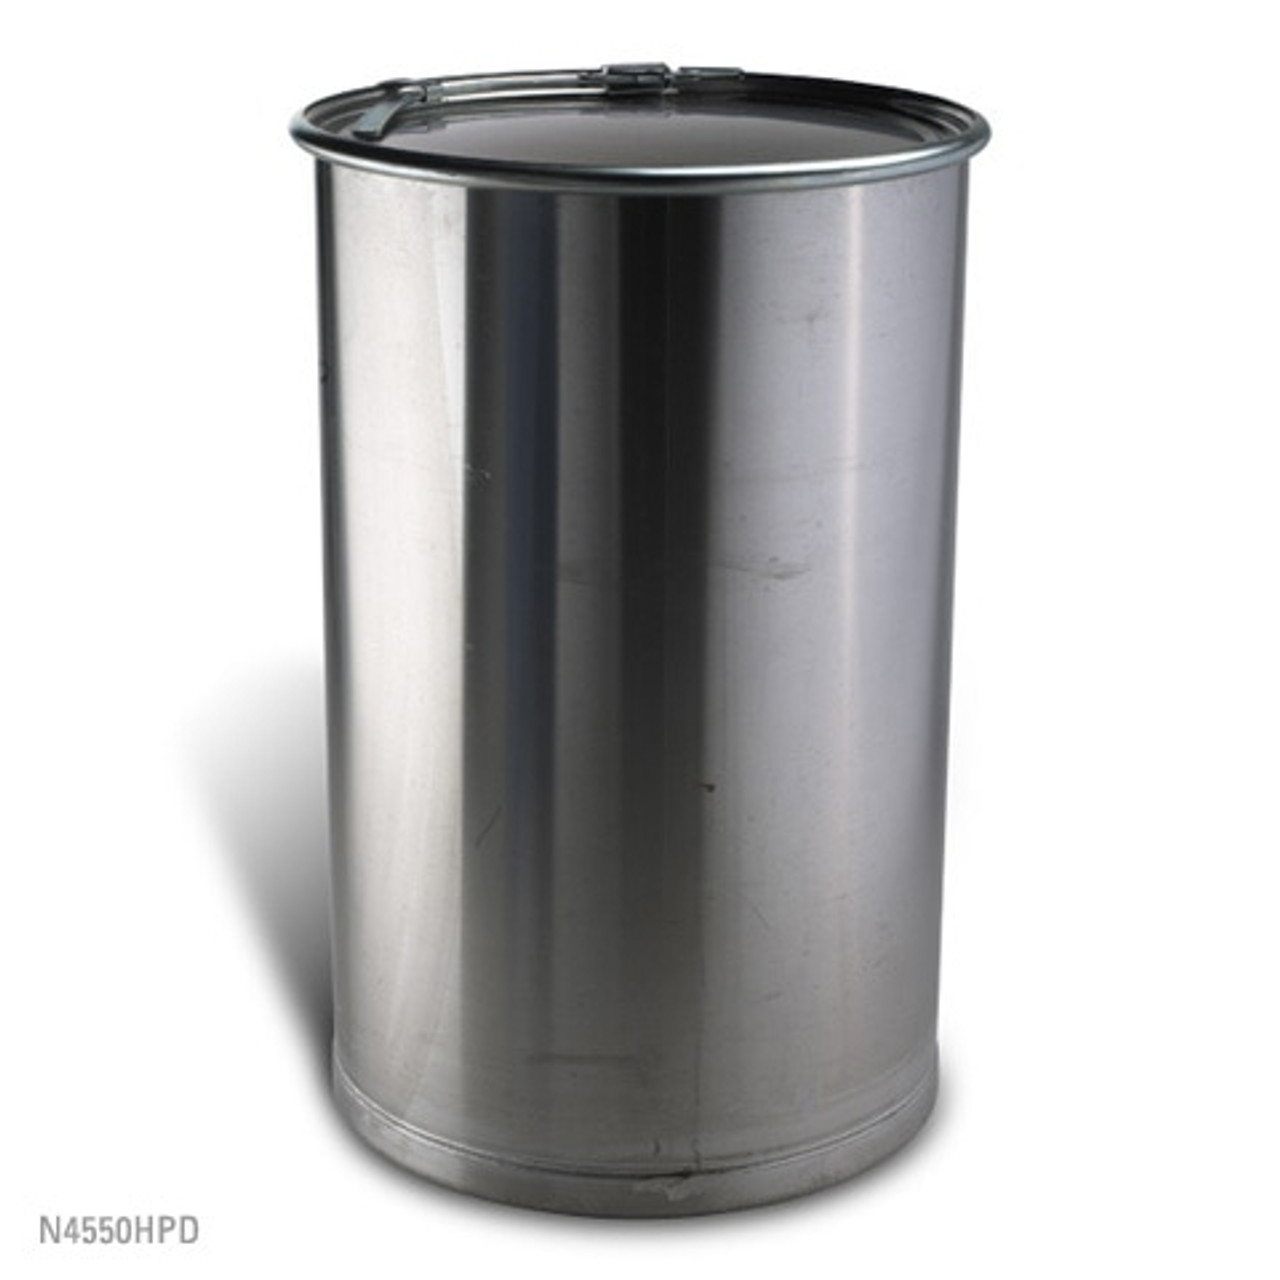 Stainless Steal Open Head Process Drum: 55 Gallon